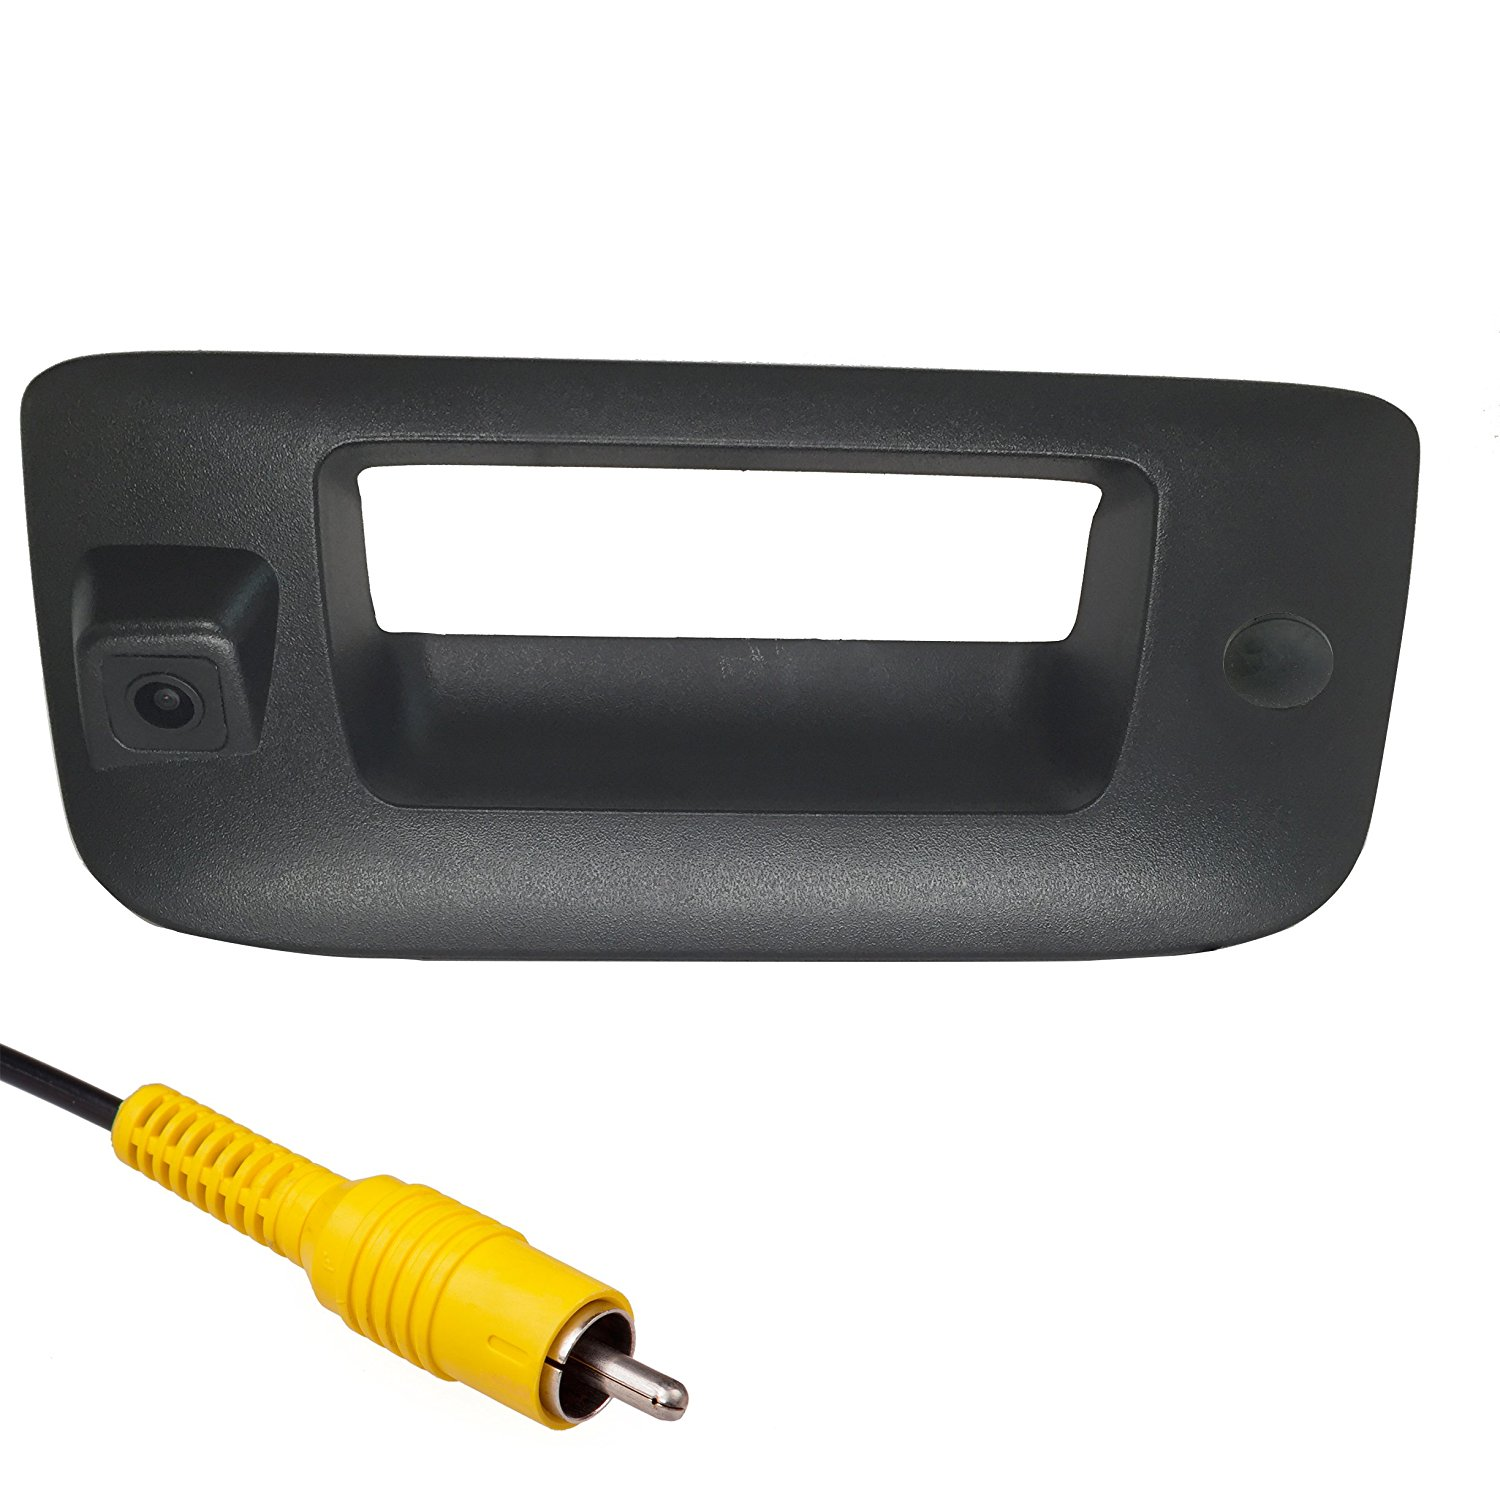 Master Tailgaters Chevrolet Silverado/GMC Sierra 2007-2013 BLACK Tailgate Backup Reverse Handle with Camera WITH Key Hole Plug